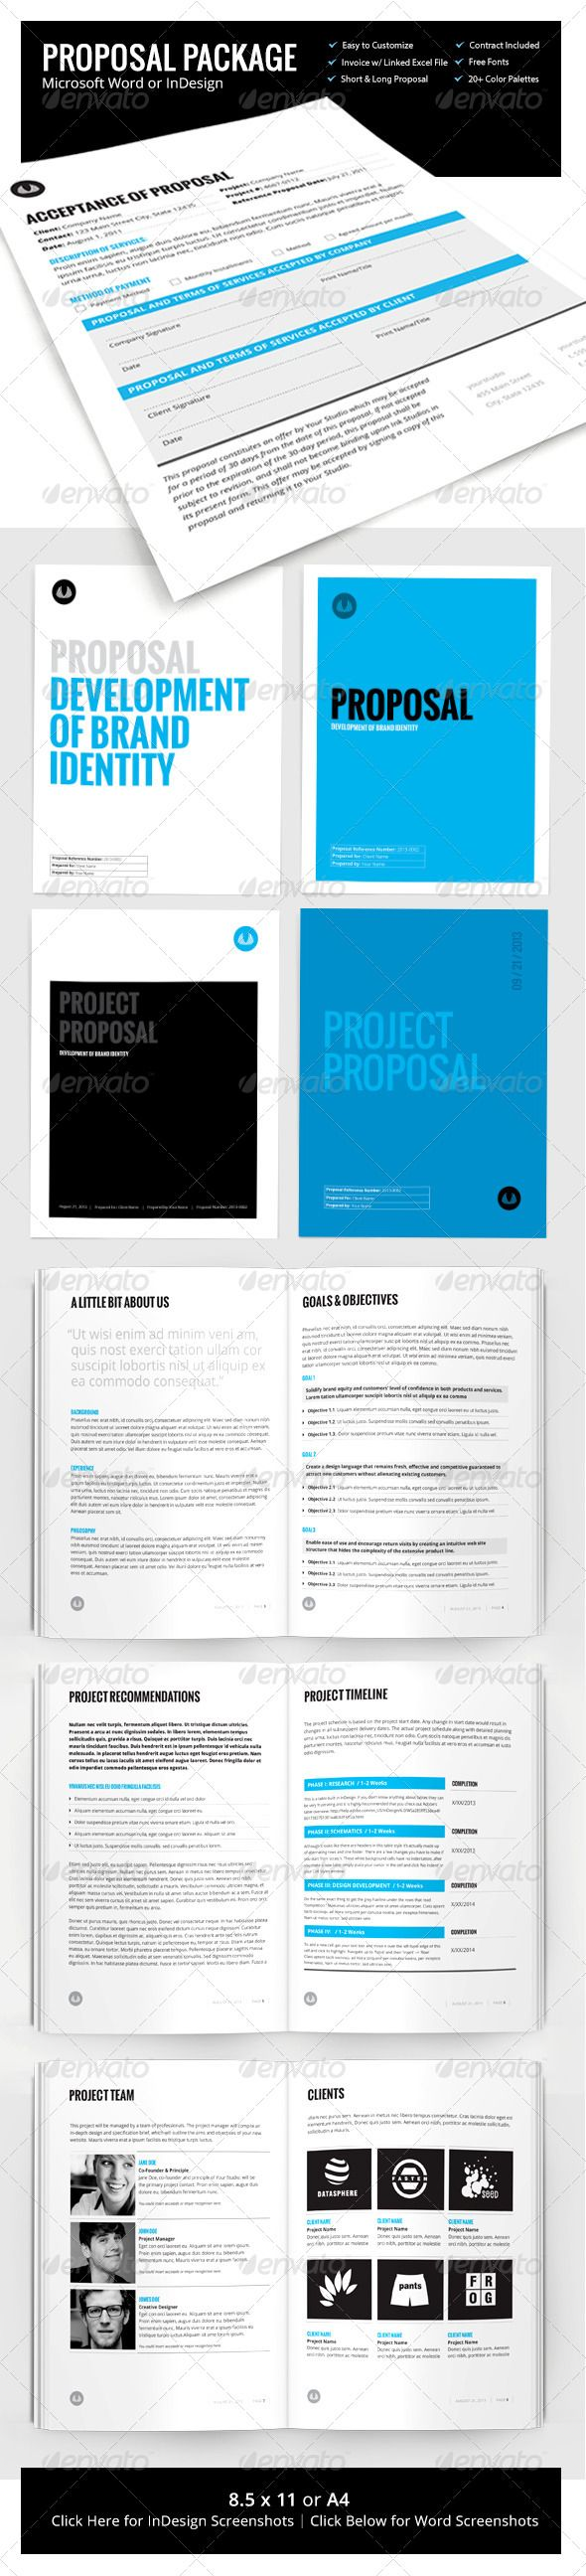 Project Proposal Template Word 396 Best Proposal Templates Images On Pinterest  Proposal Templates .